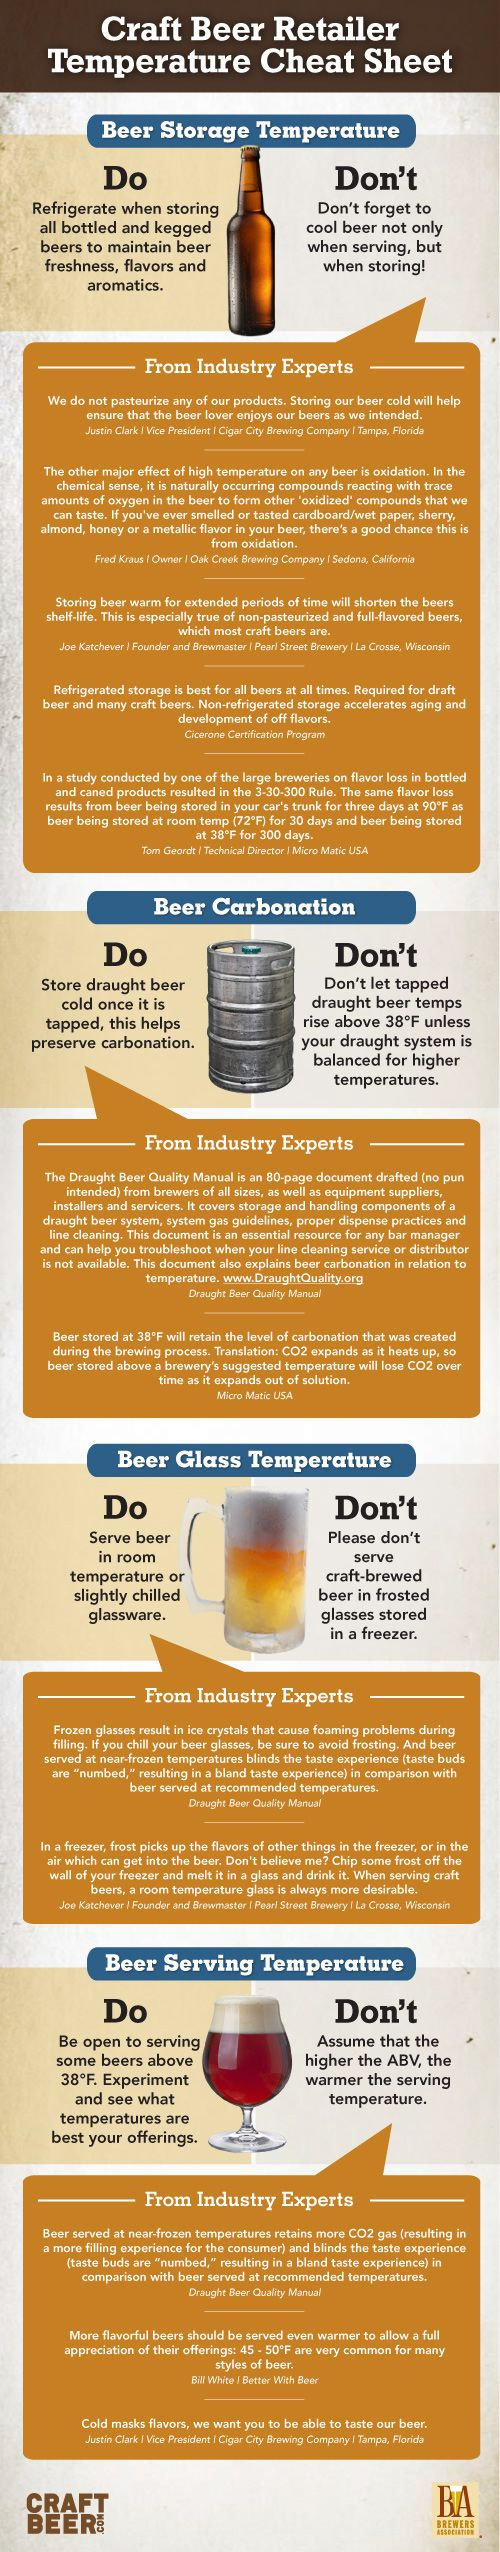 As an FYI for your craft brewers out there